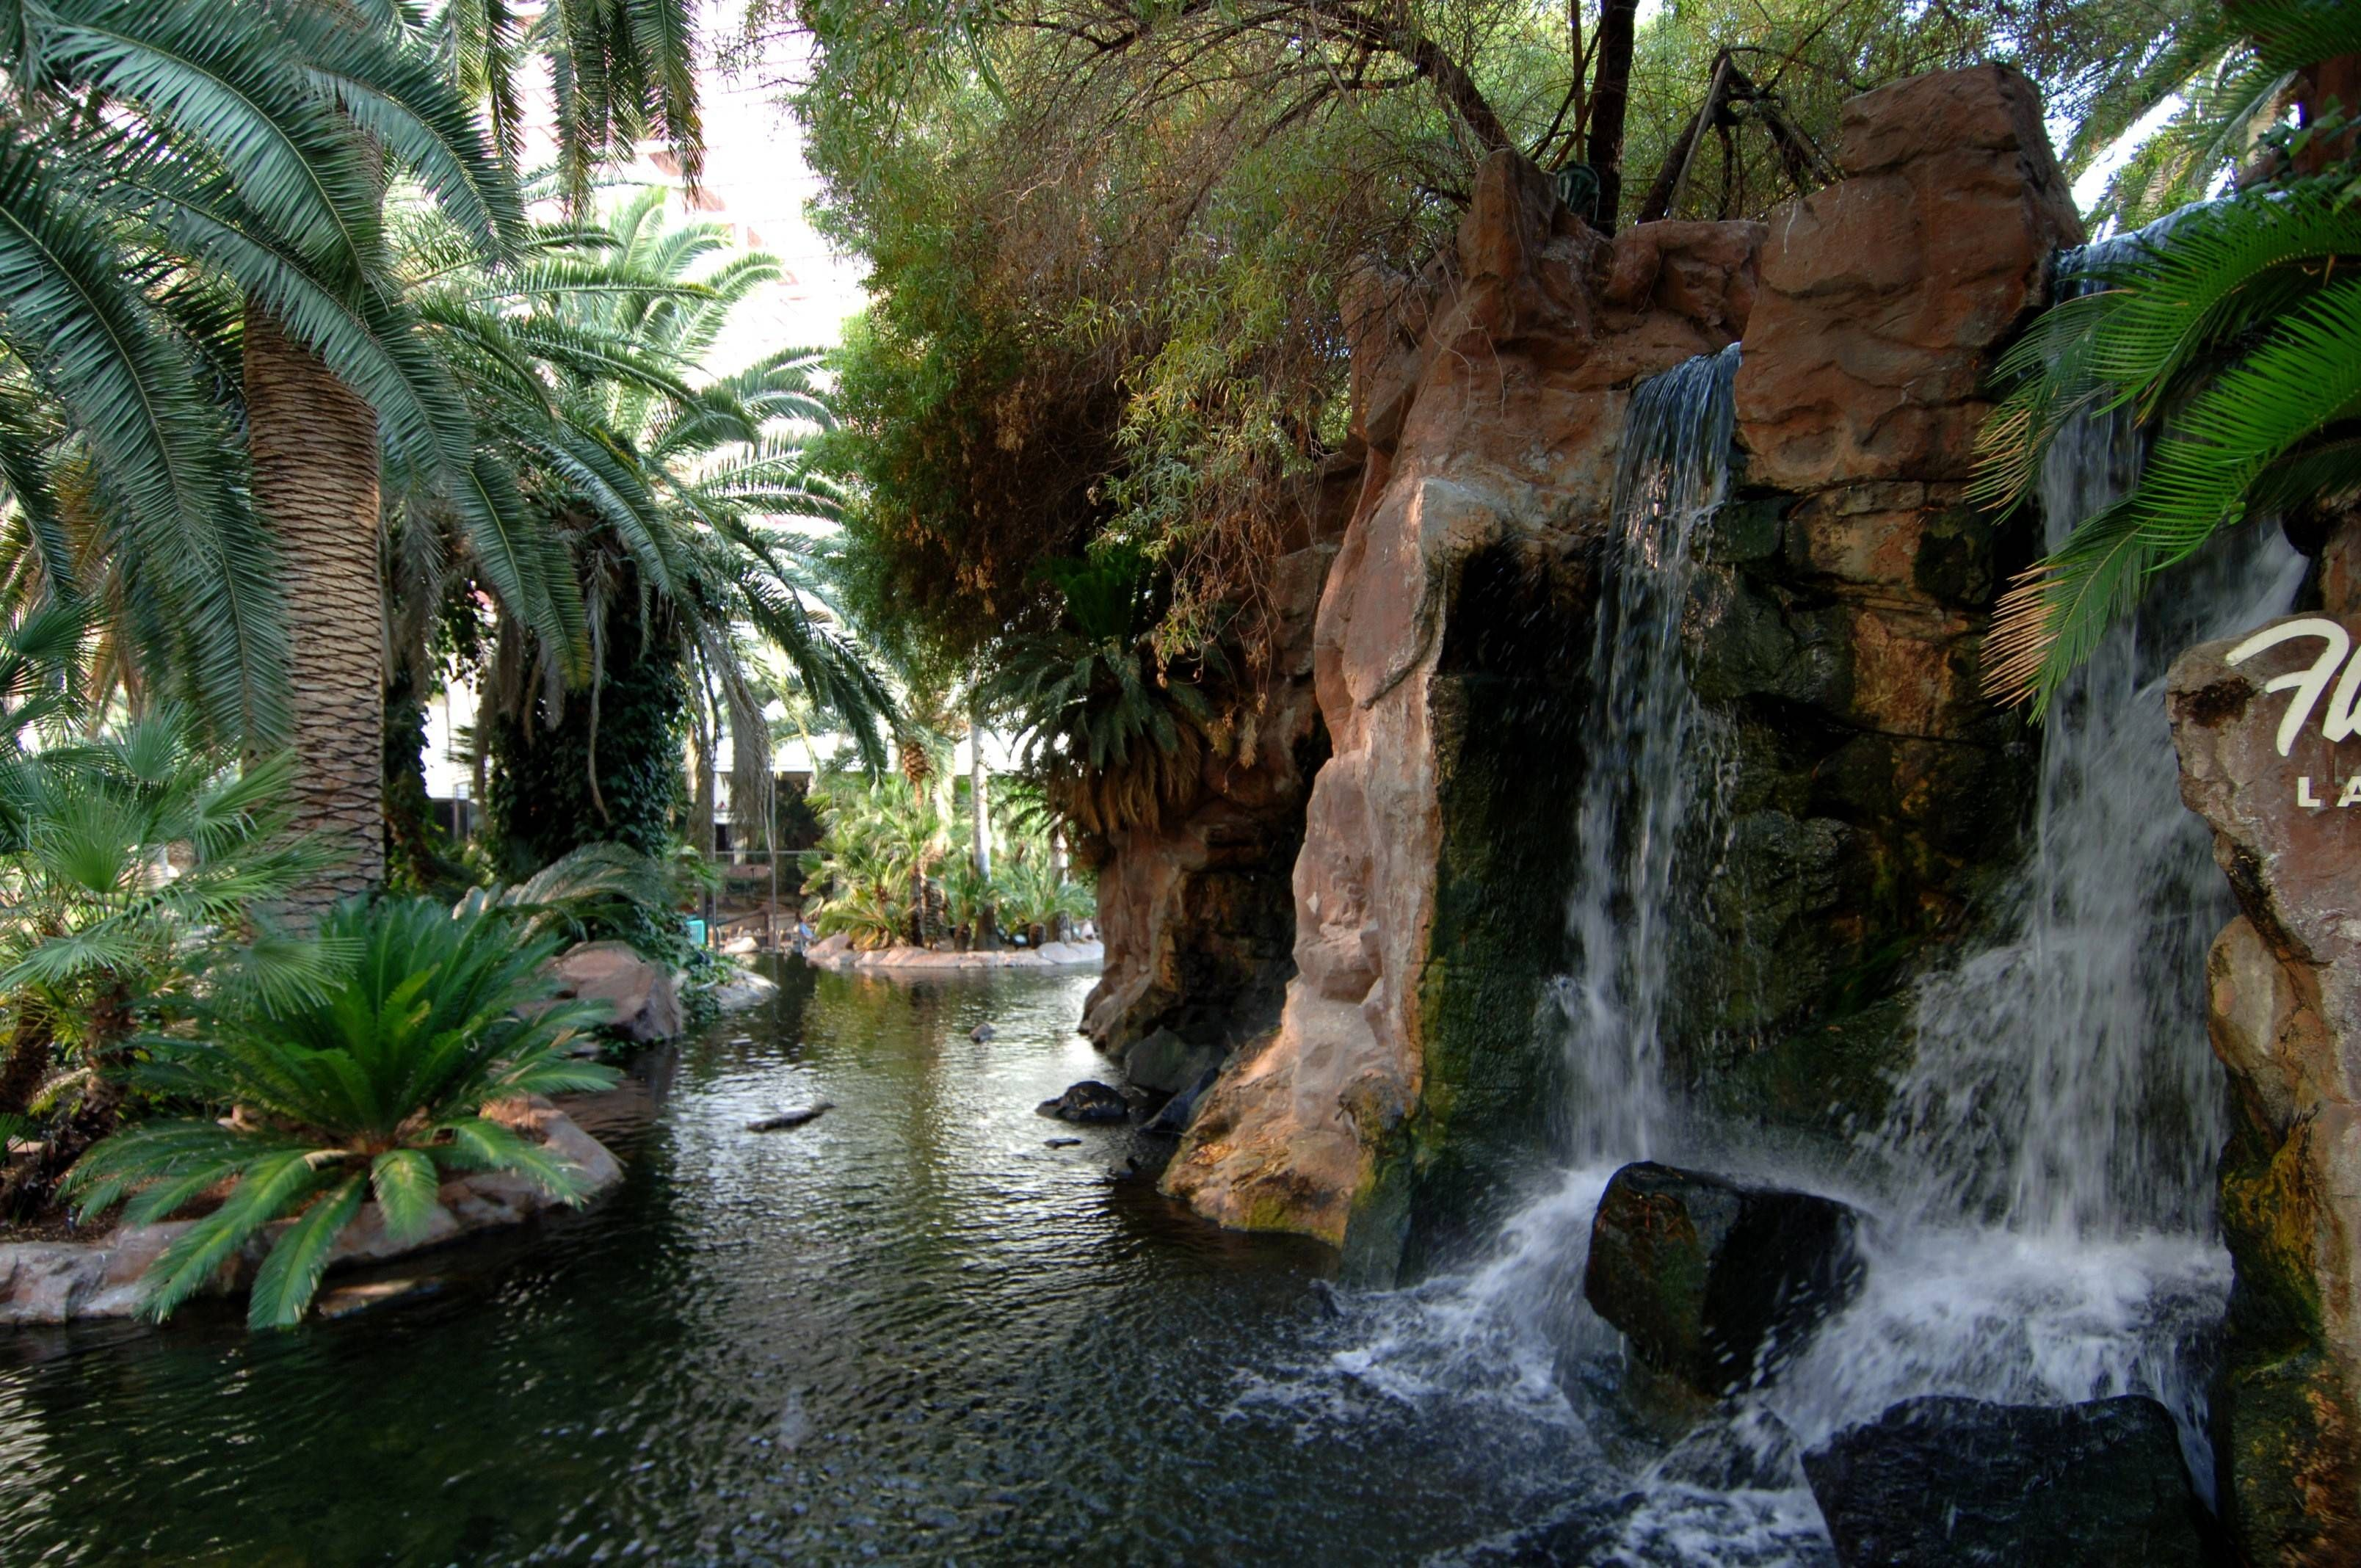 Flamingo Hotel's beautiful garden with waterfalls and